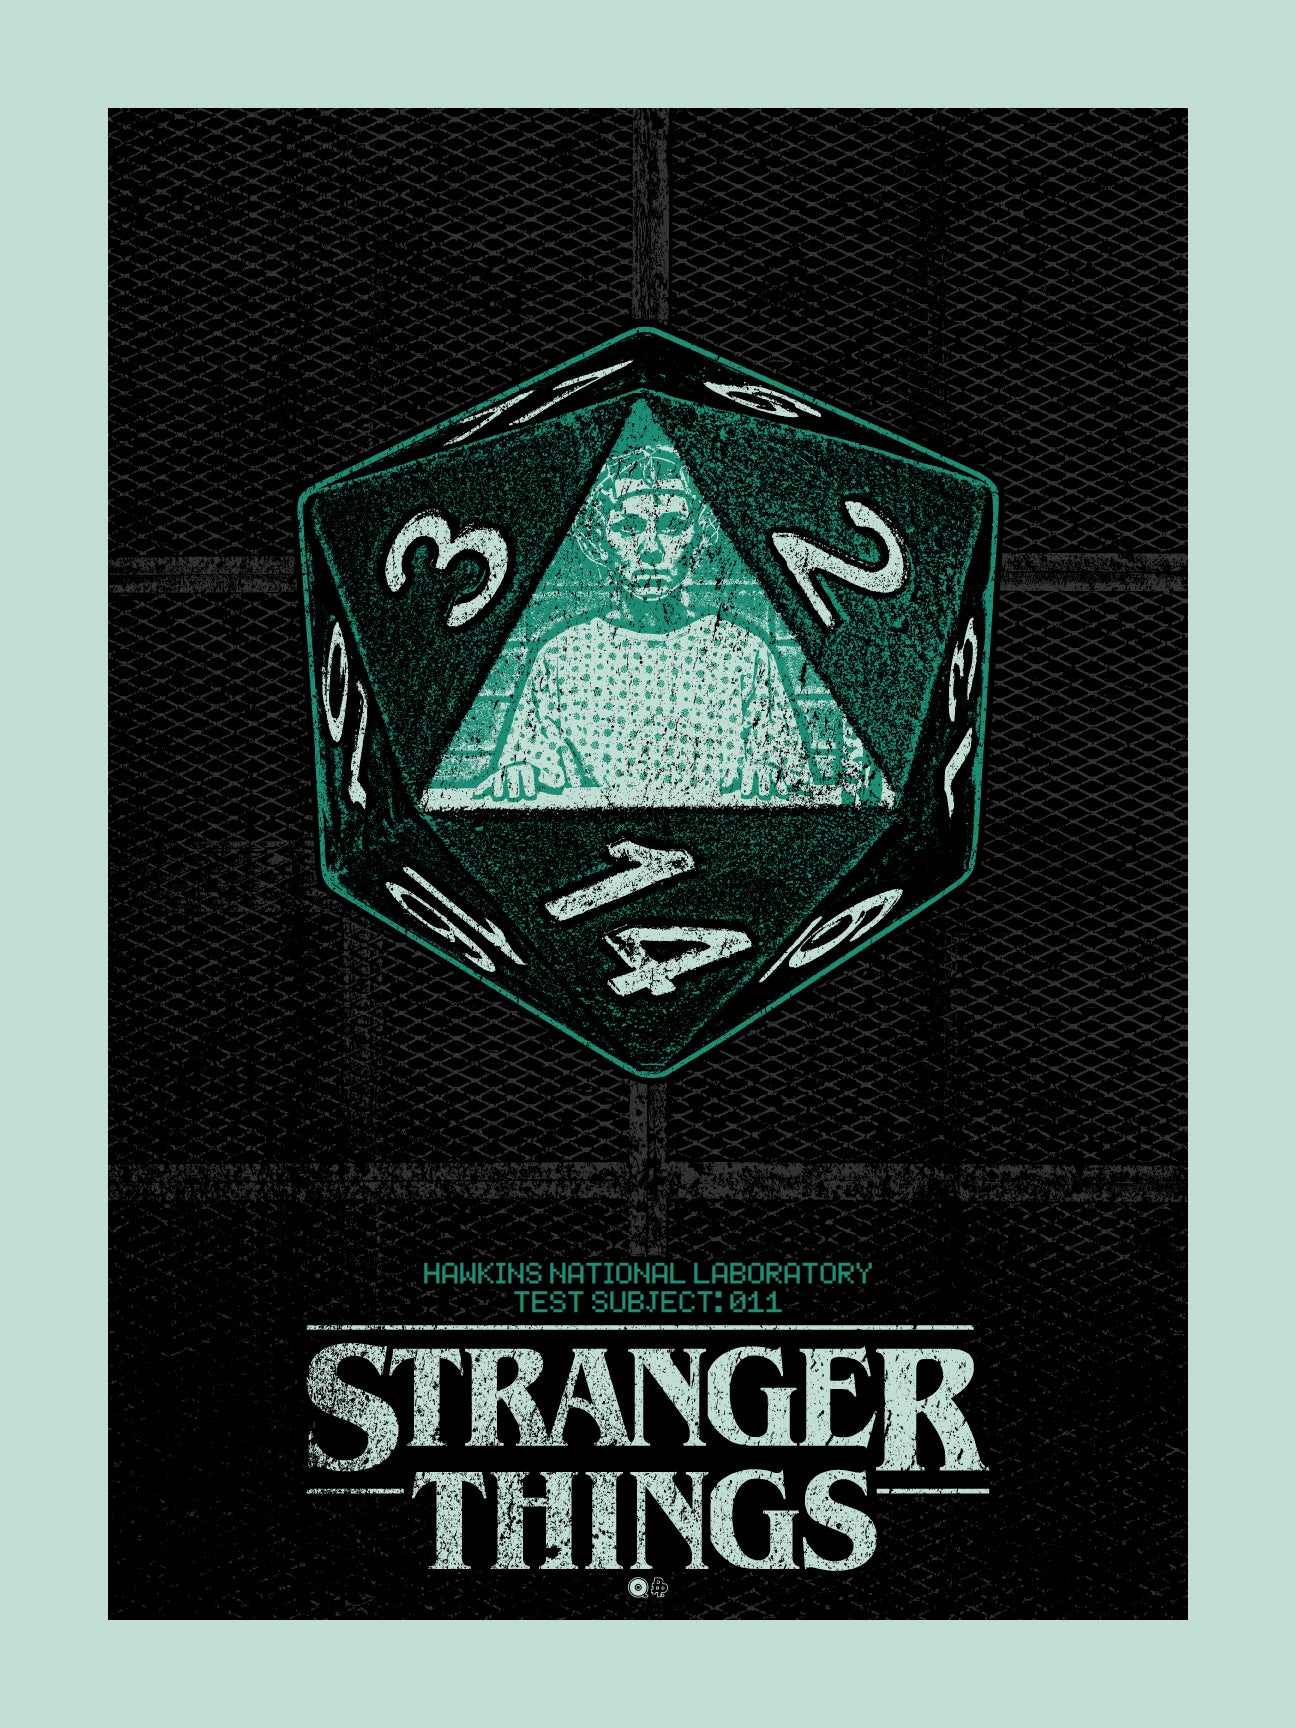 Stranger Things Dice Print by Chris Garofalo